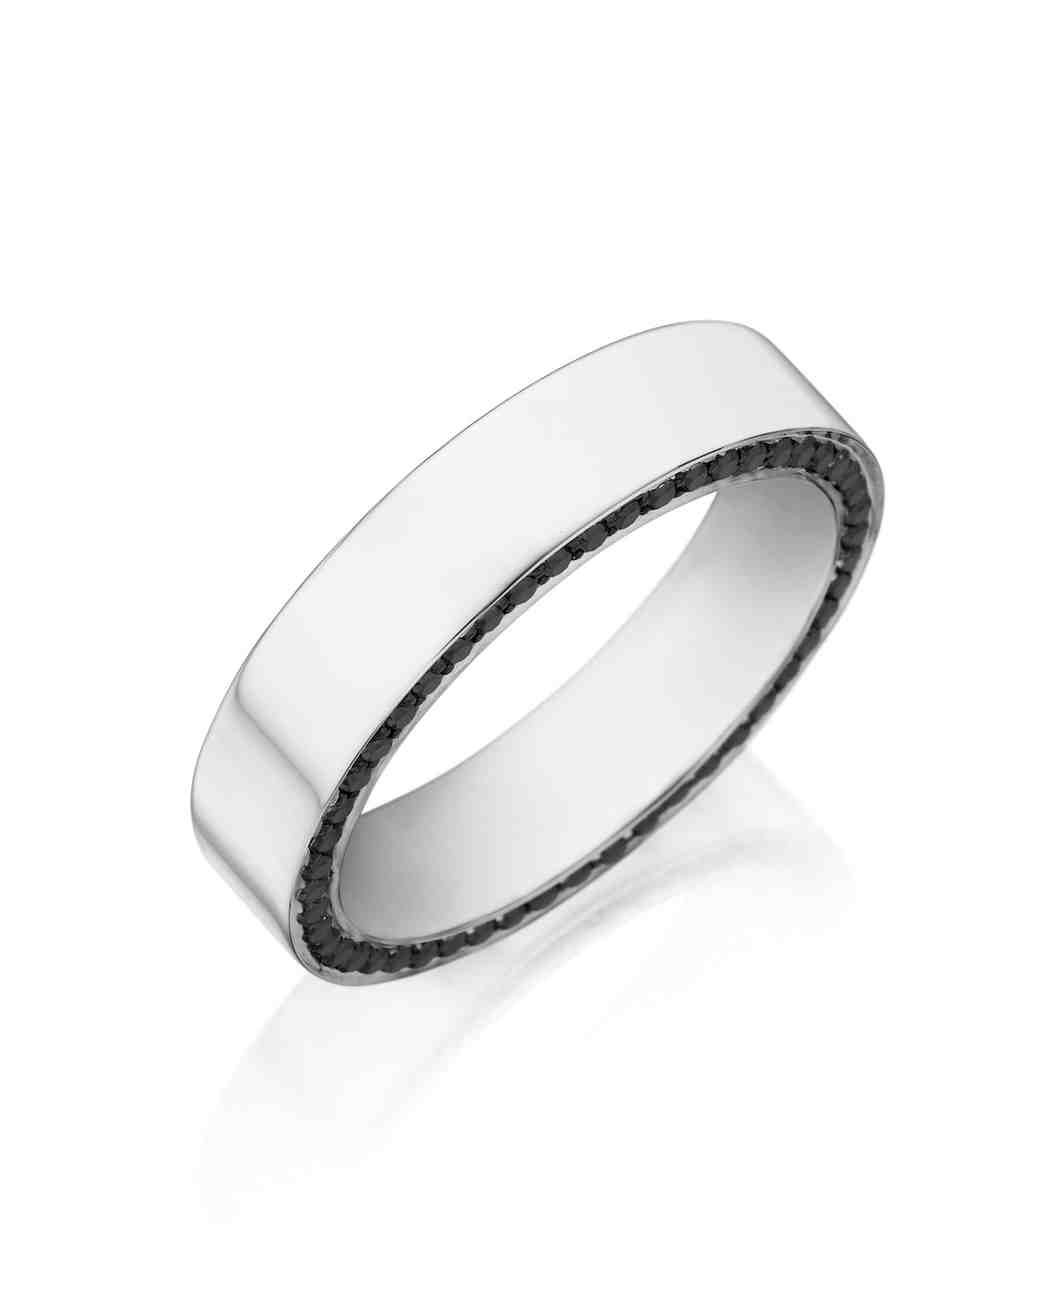 henri-daussi-mens-silver-wedding-band-0216.jpg